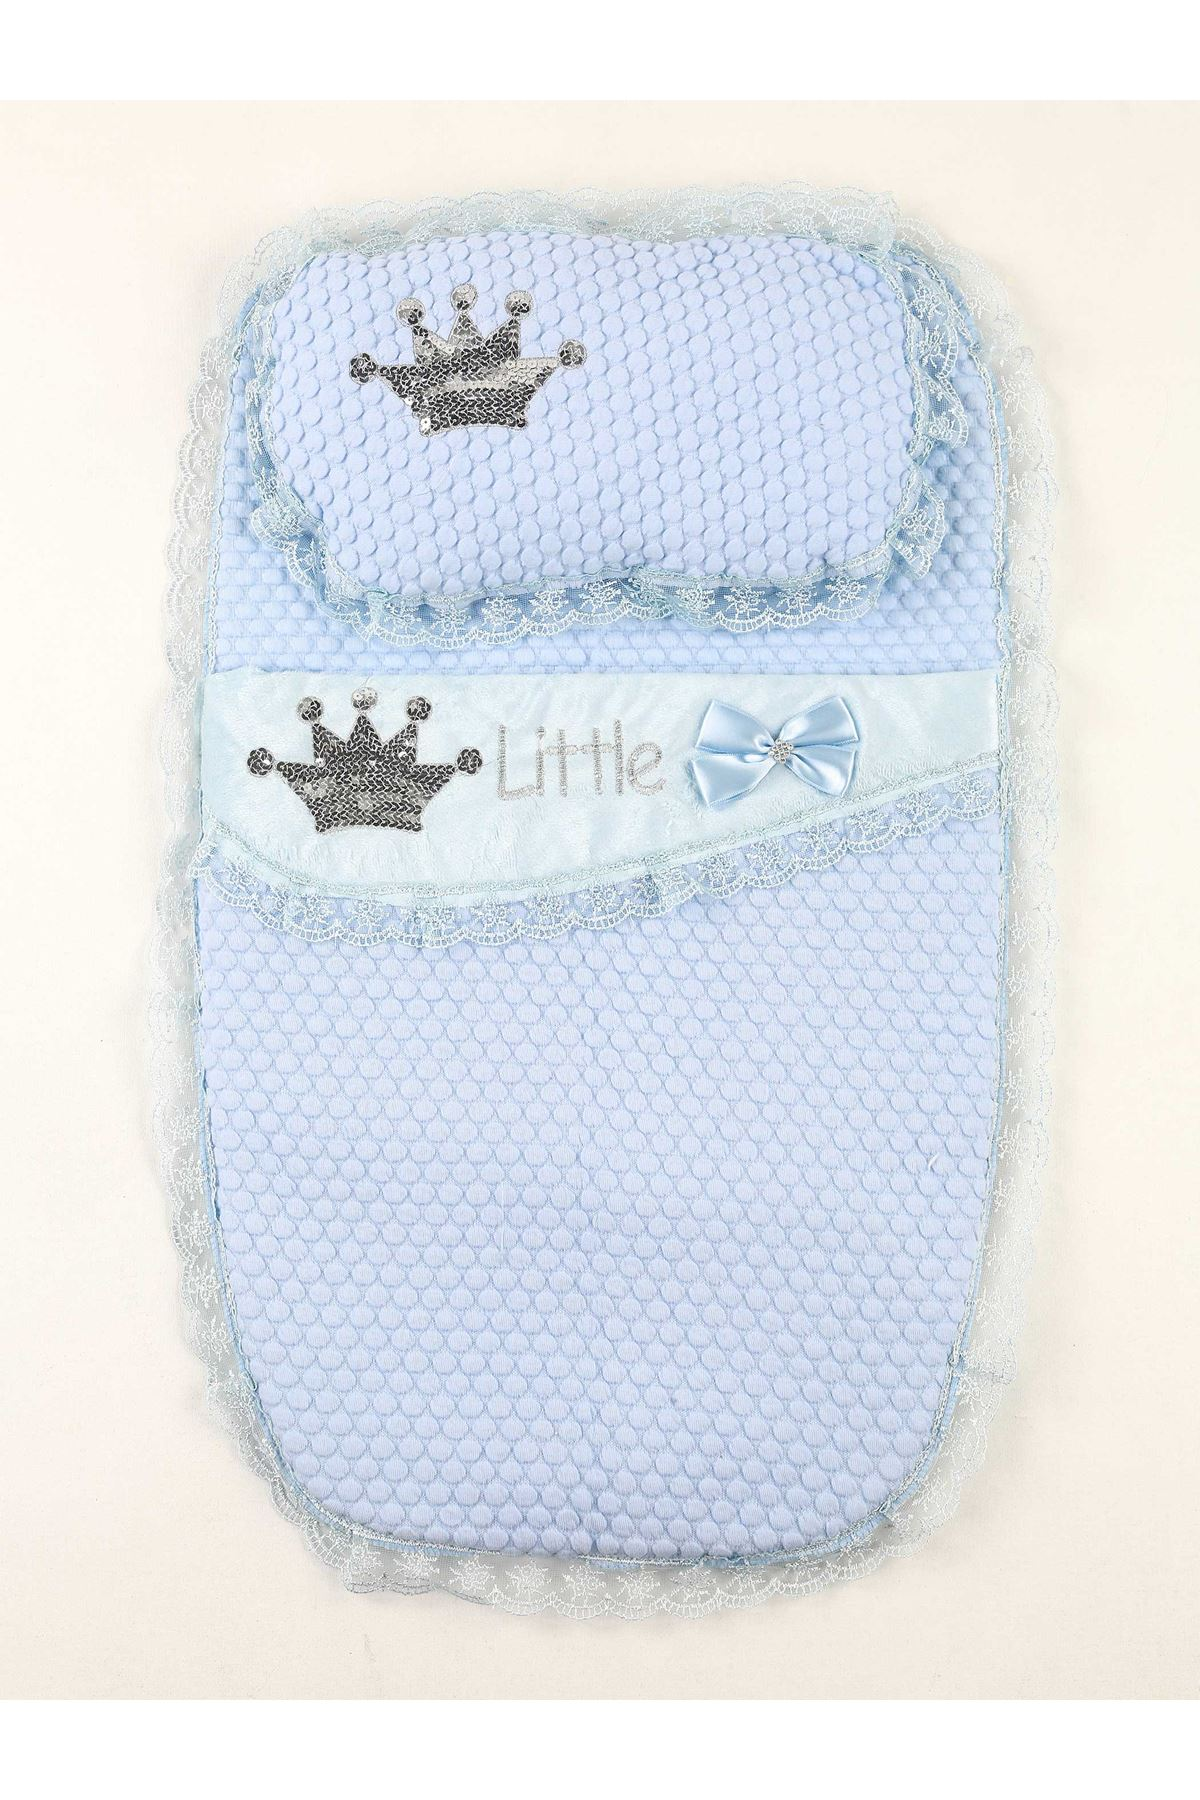 Blue Baby Boy Swaddle King Crown The Little Prince Cotton Soft Bottom Opening Babies Newborn Baby Stroller Bed Sweatproof Models